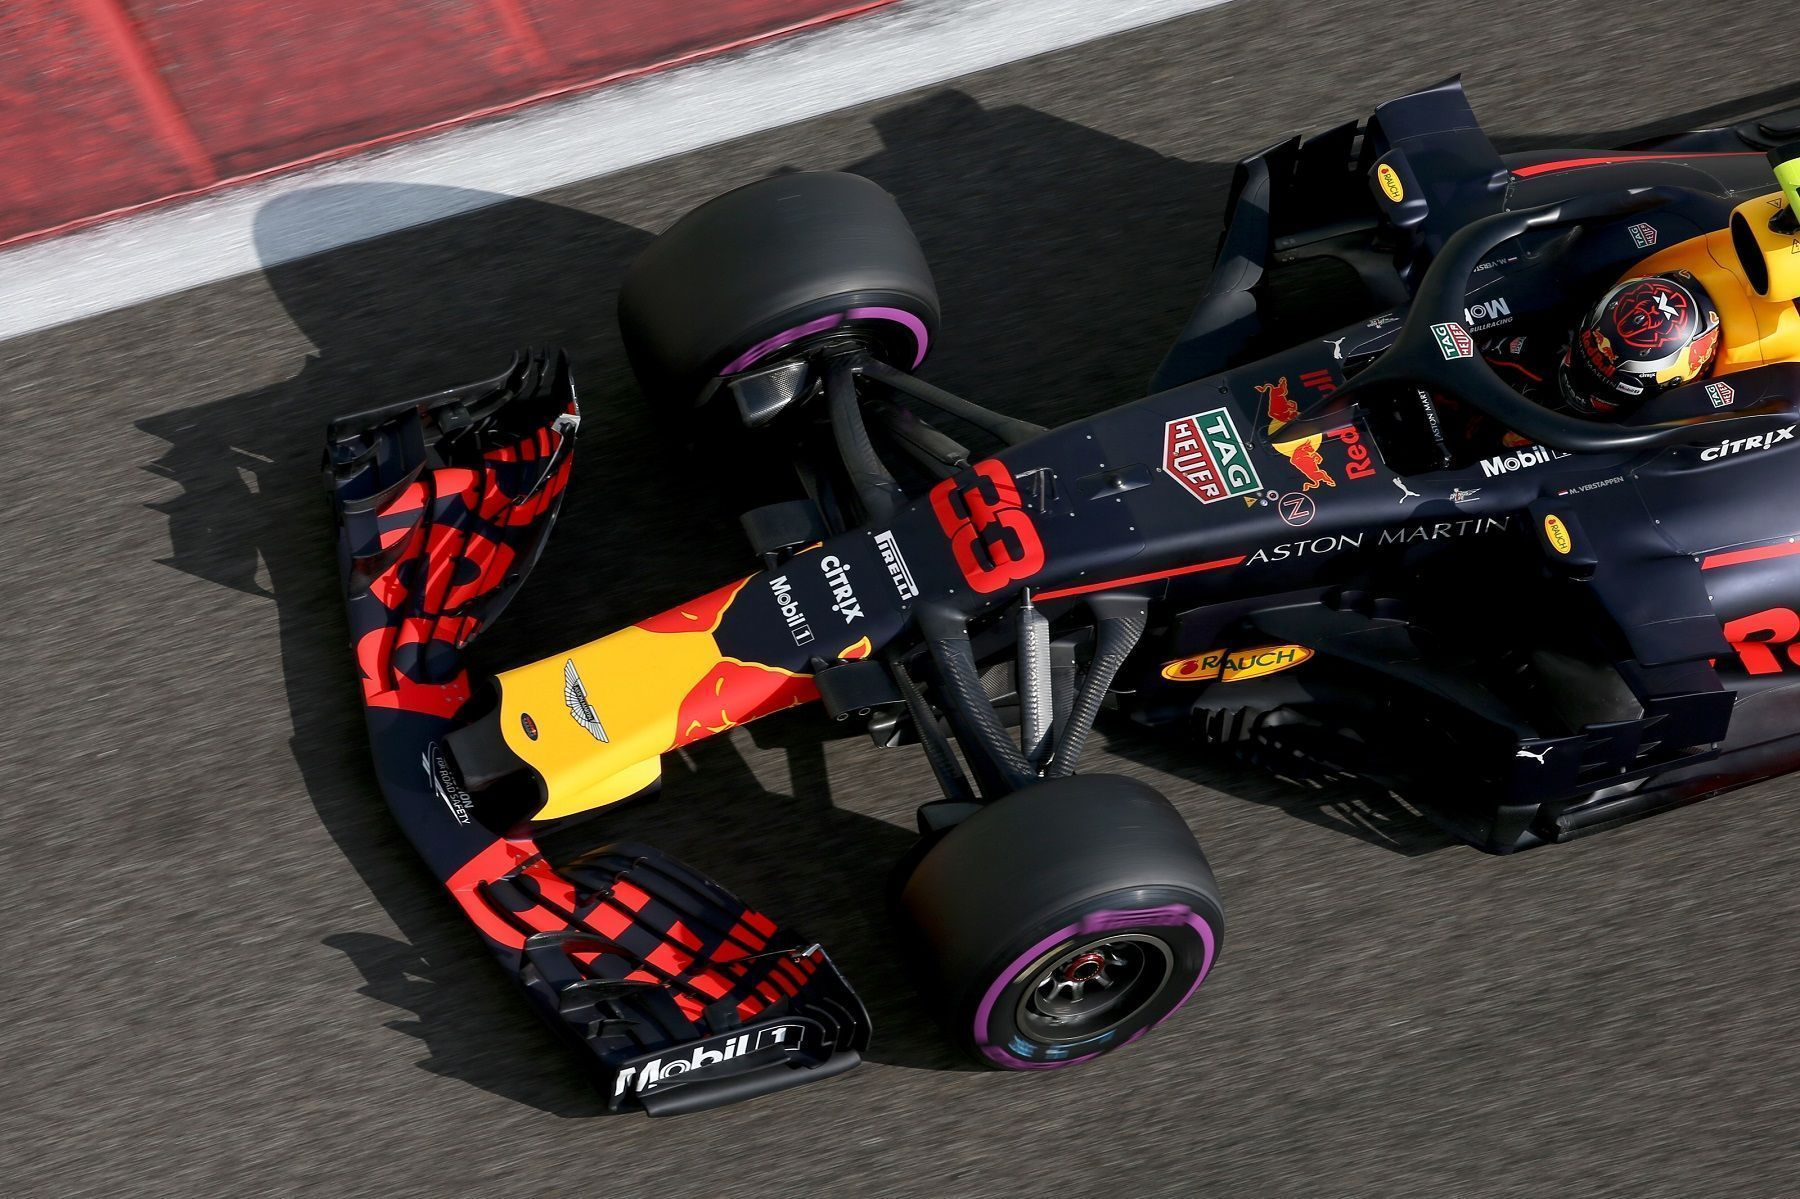 Tag Heuer, Red Bull